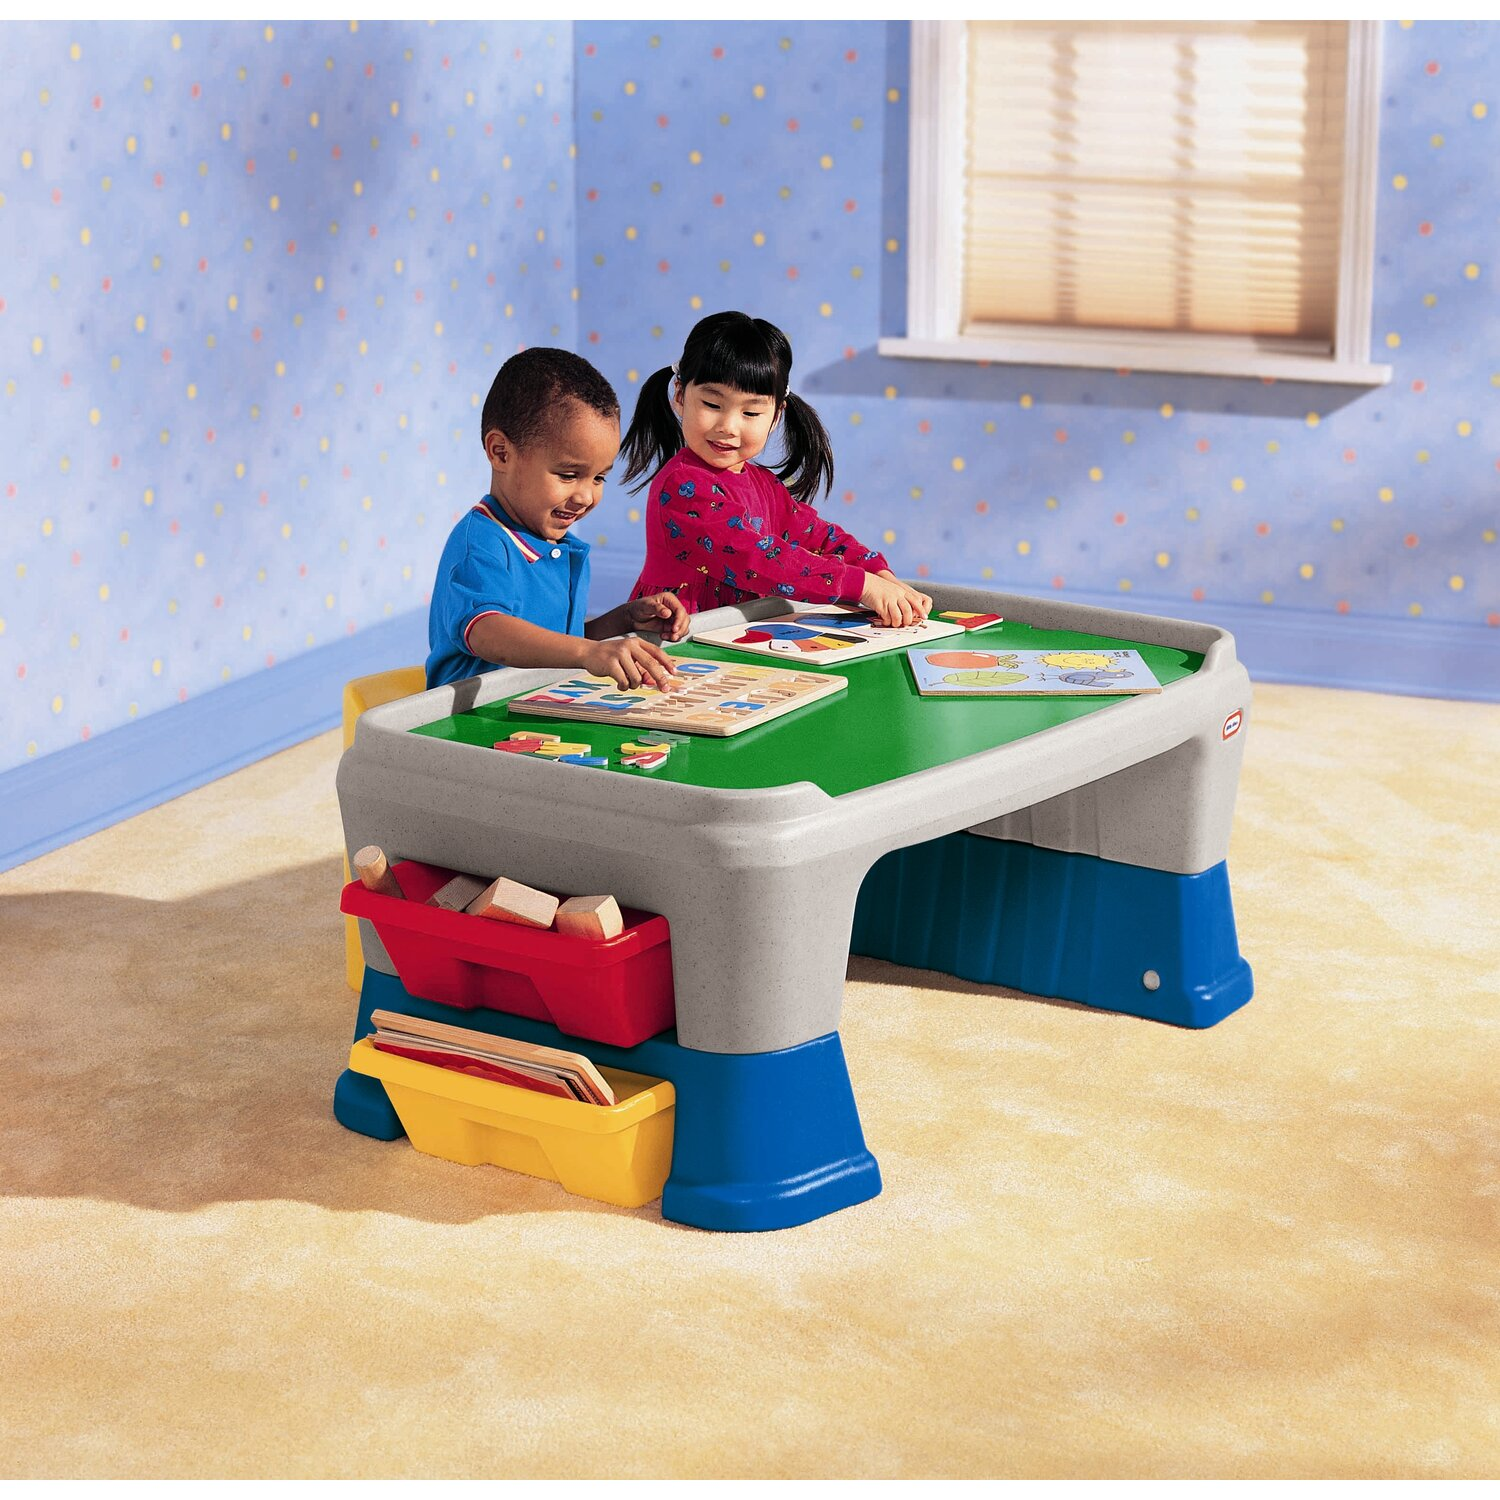 Easy Adjust Play Table - for  floor play and chair height setting